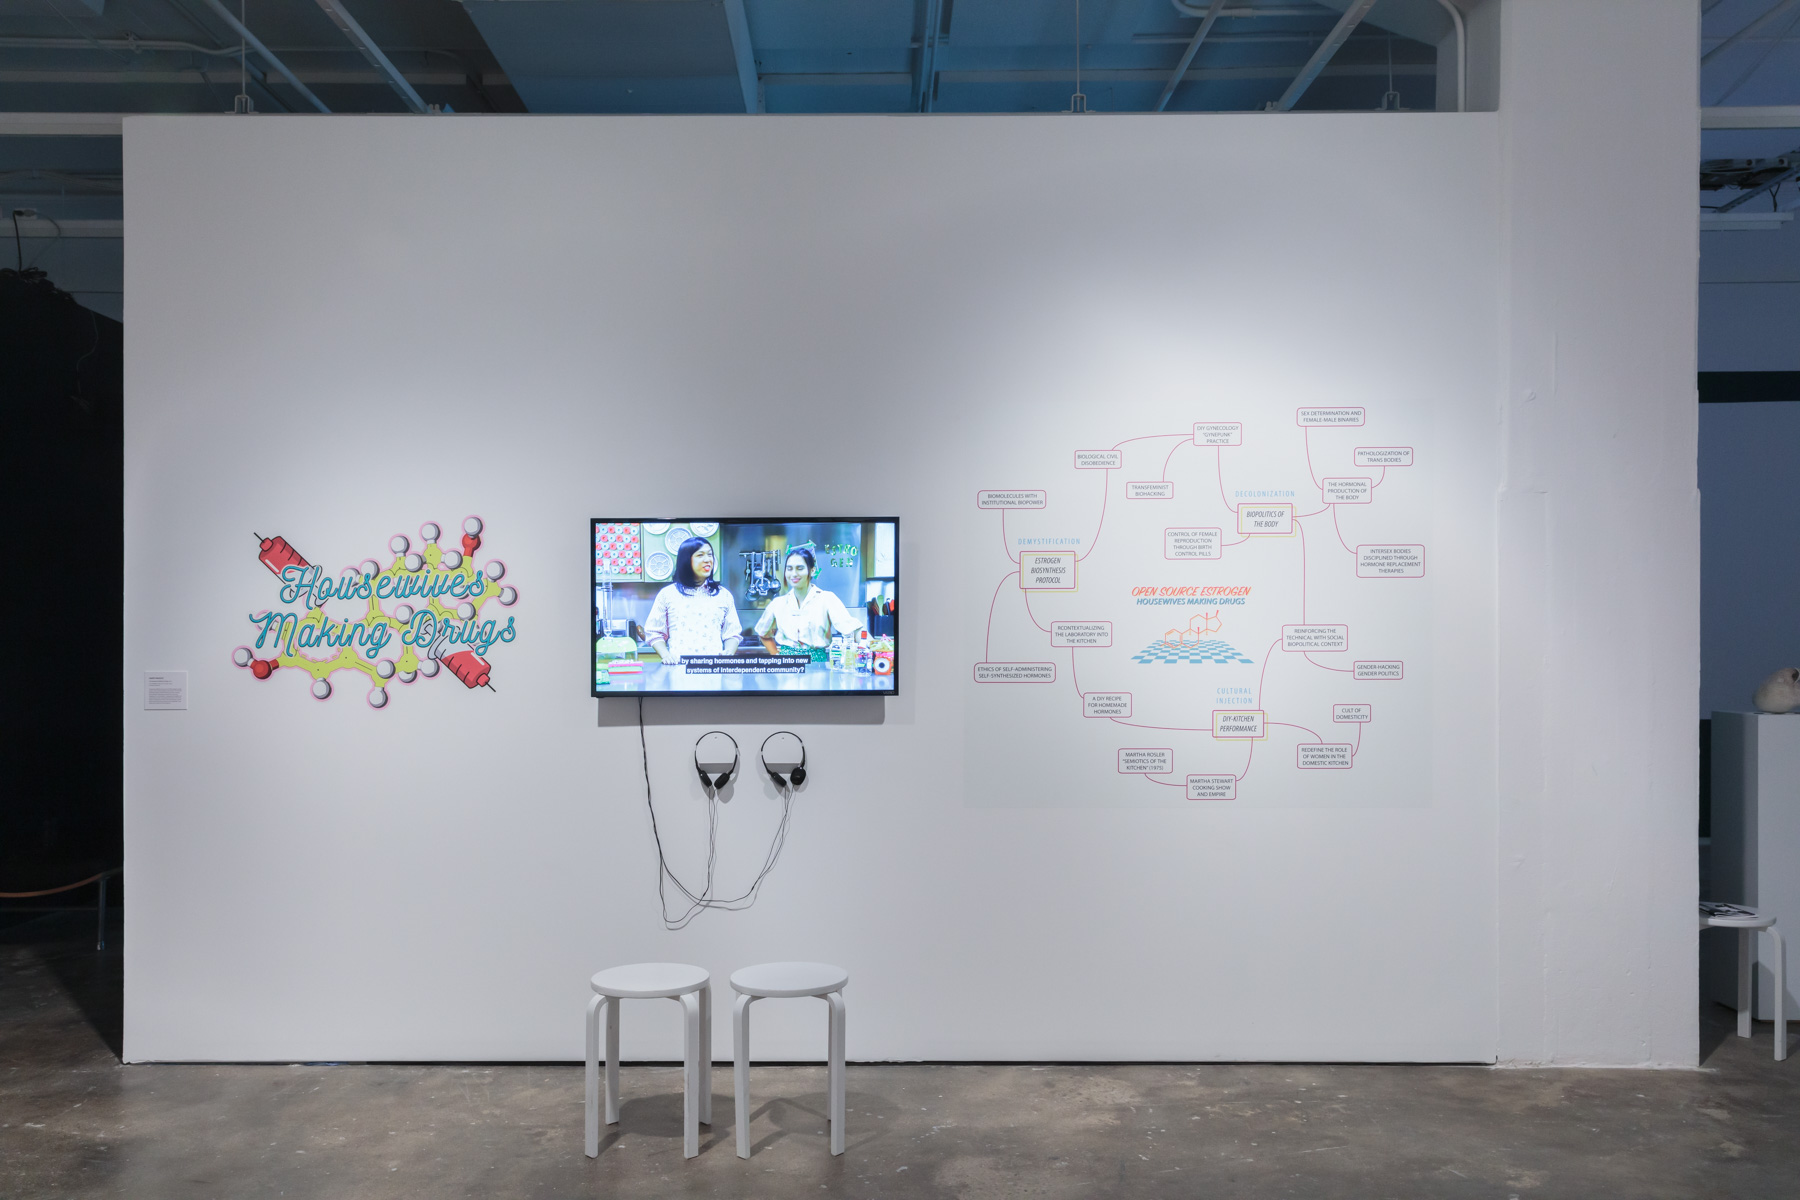 Mary Maggic,  Housewives Making Drugs , 2017. Vinyl installation and video, 10 min. 12 sec., sound. Courtesy of the artist. Installed in  Refiguring the Future , Hunter College Art Galleries, 2019. Photo by Stan Narten.